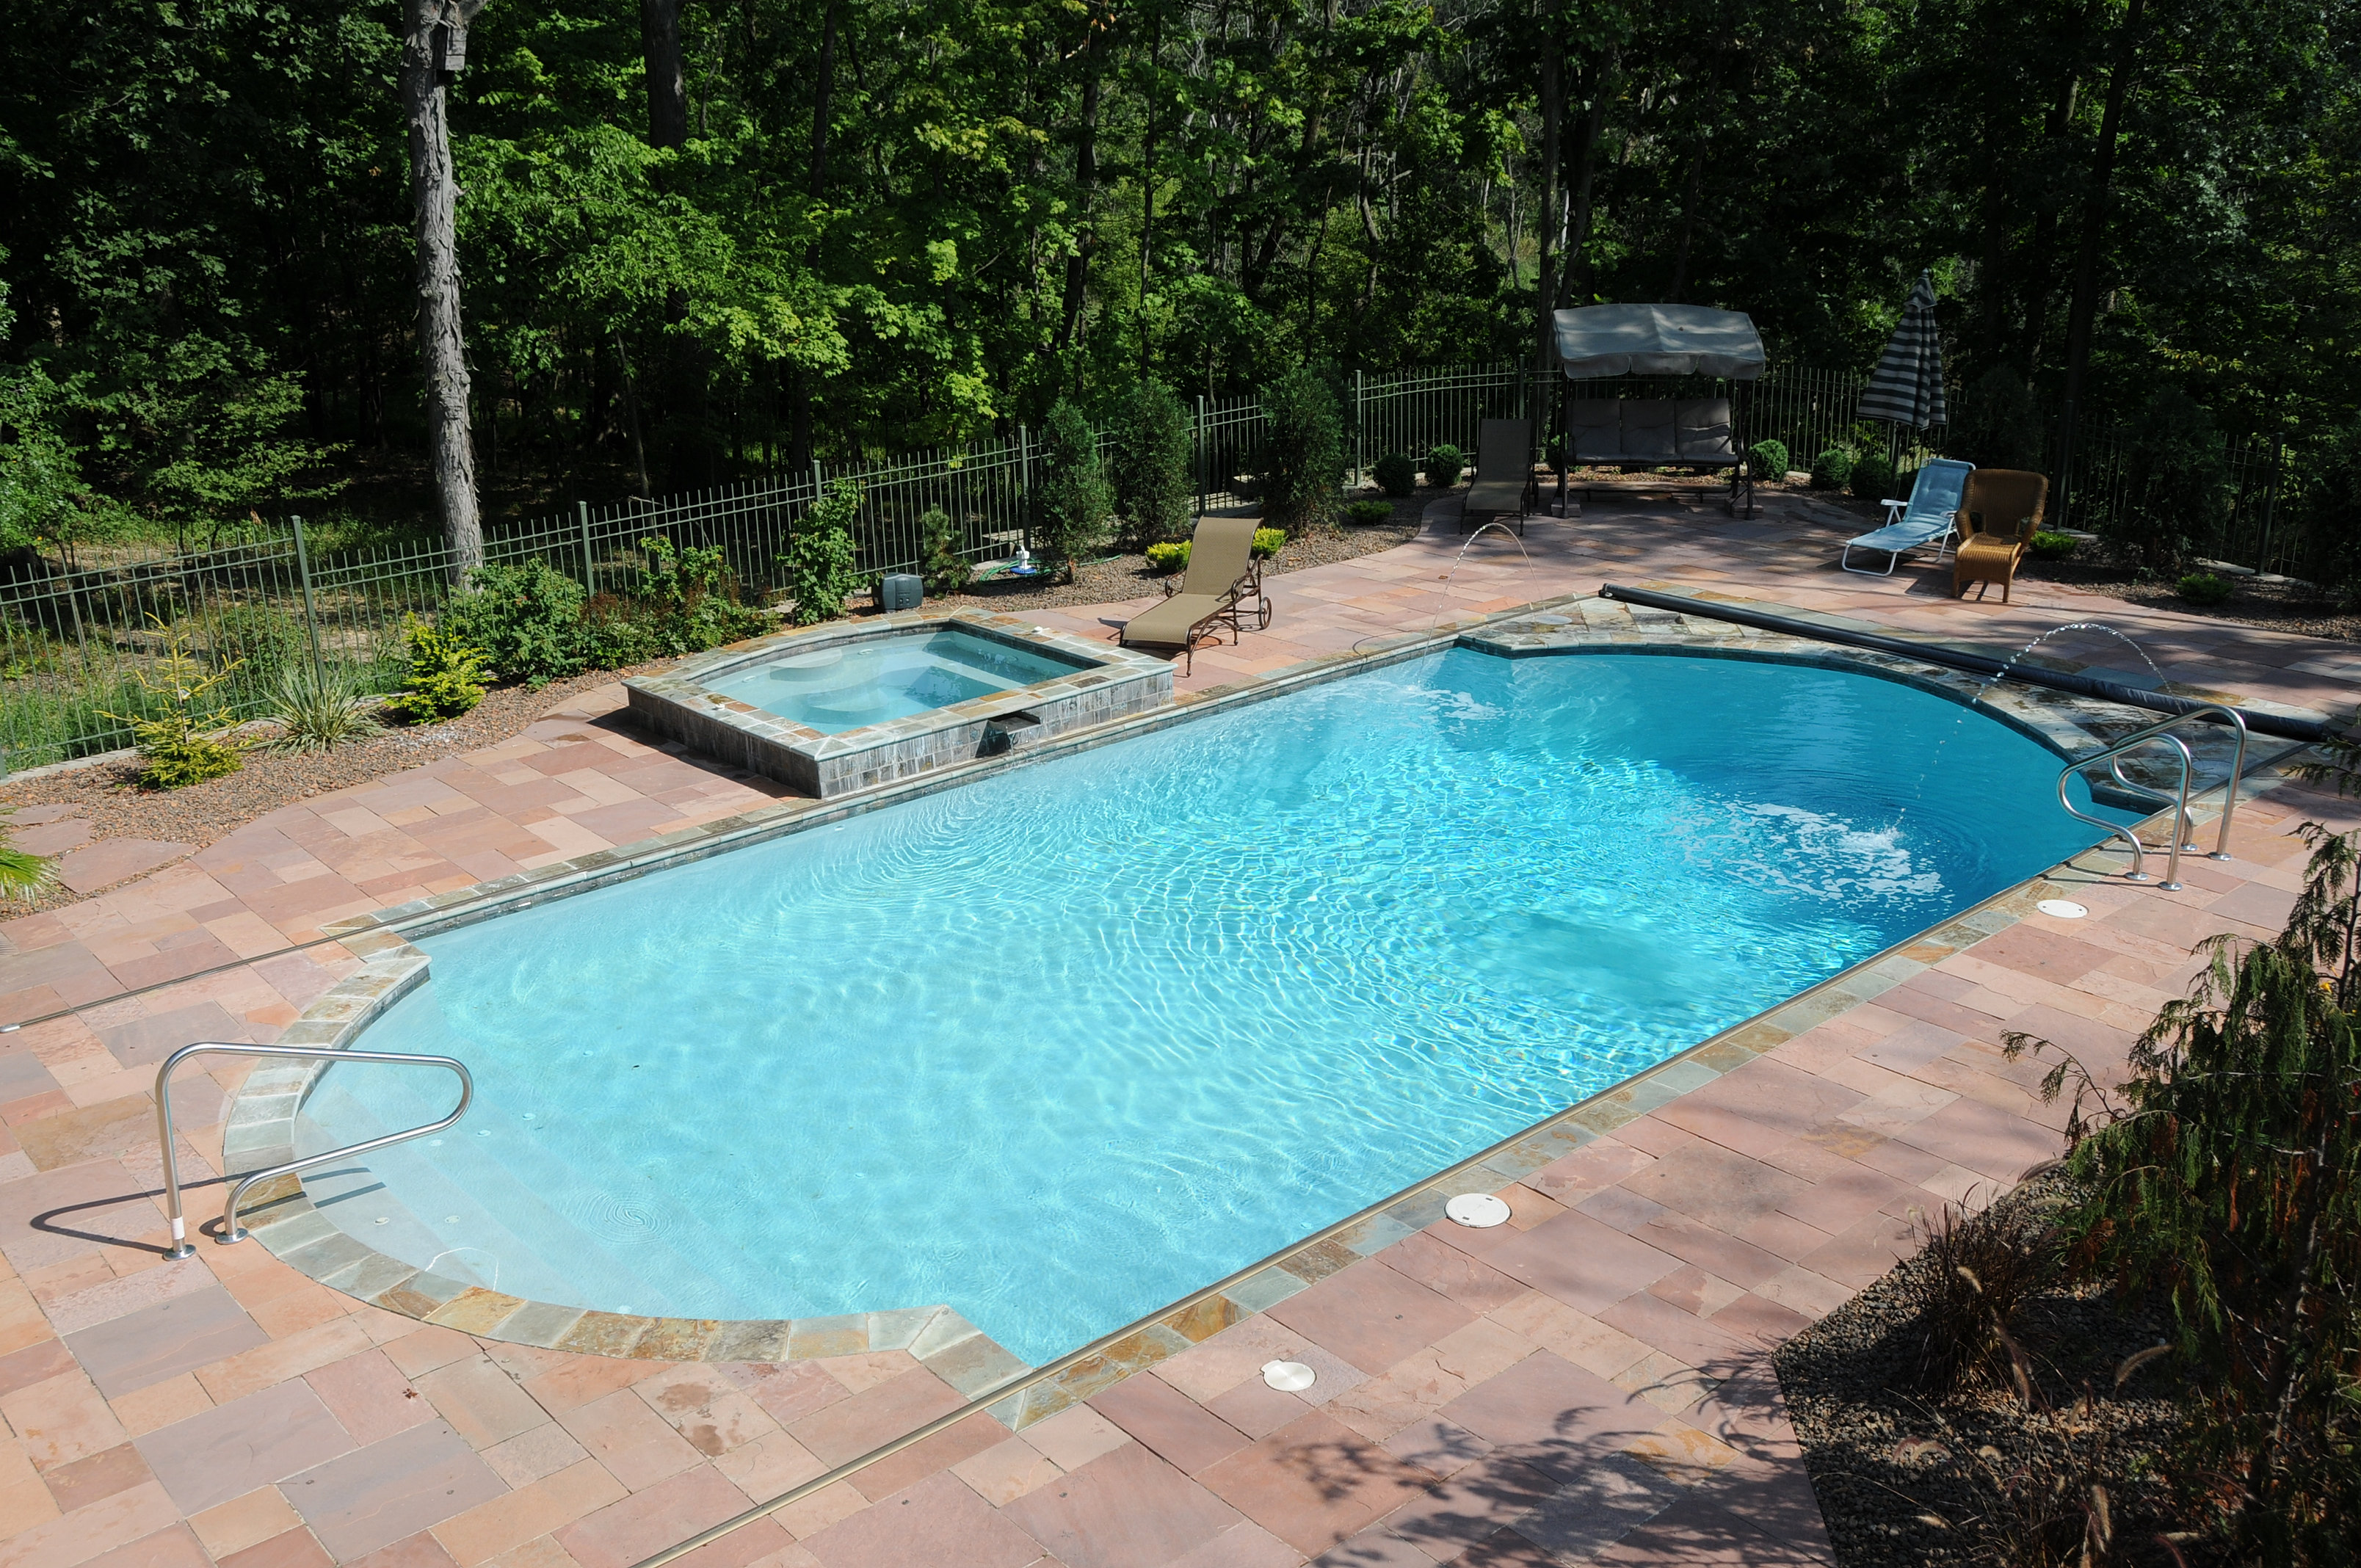 chicago pool builder pool supply pool service all